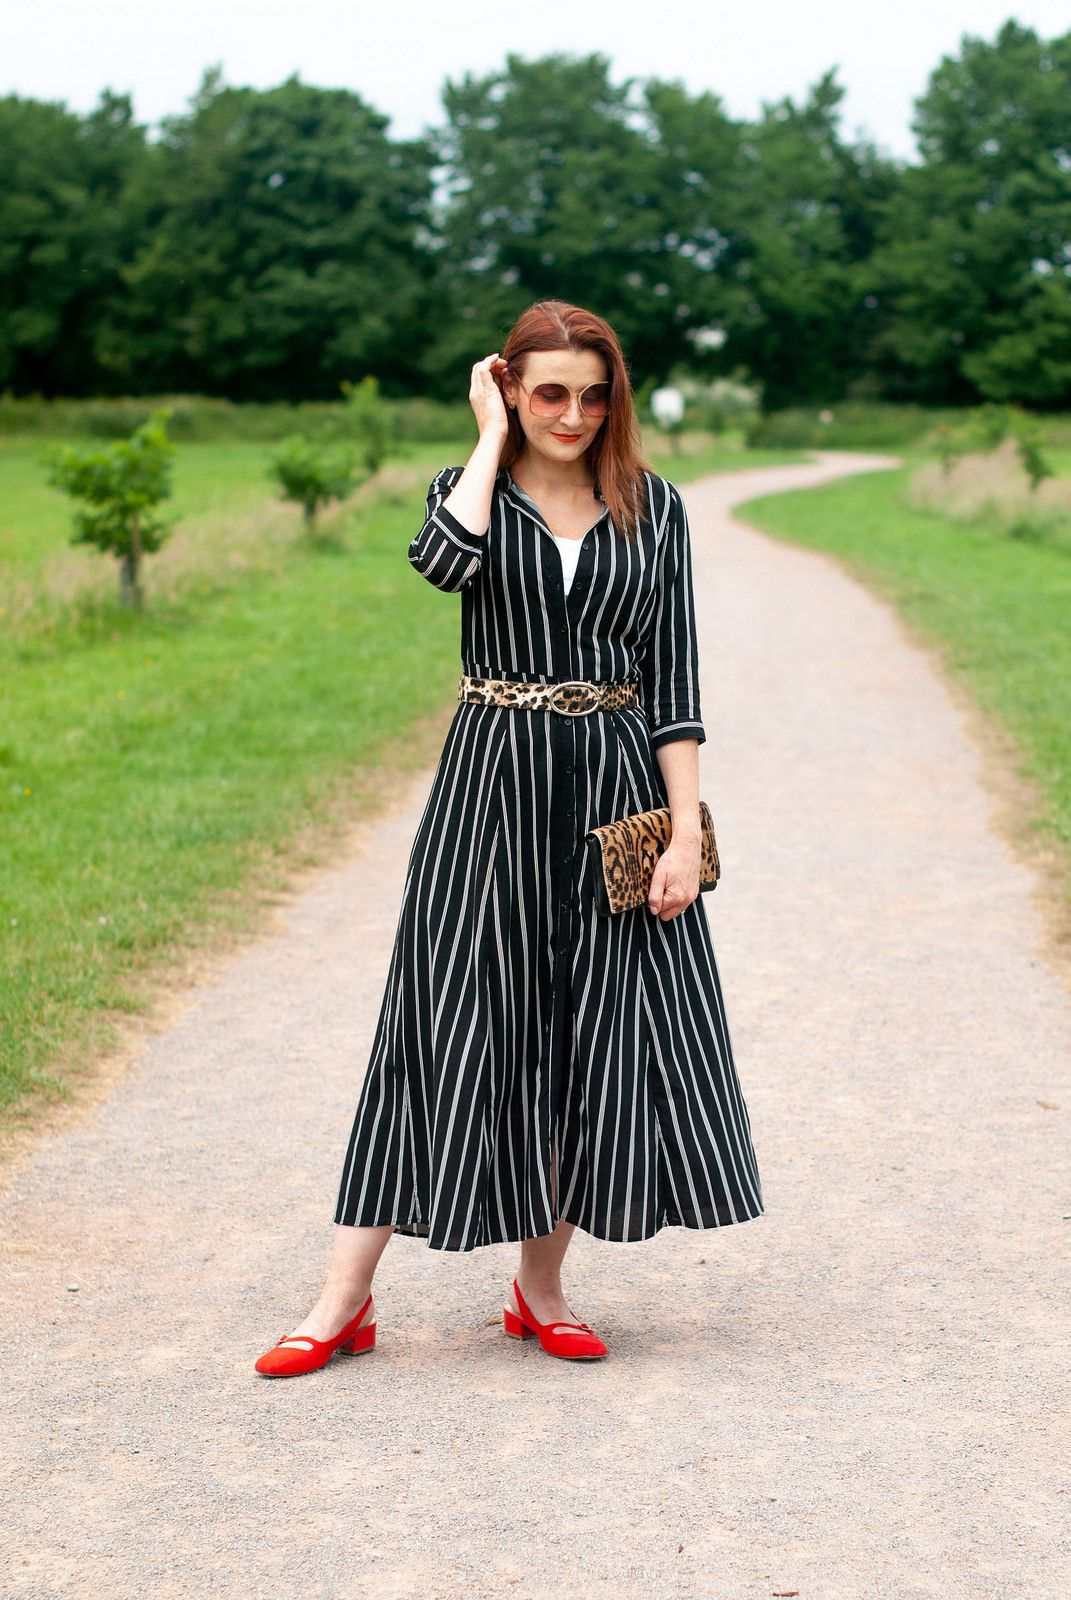 How to style a summer shirt dress with pattern mixing black and